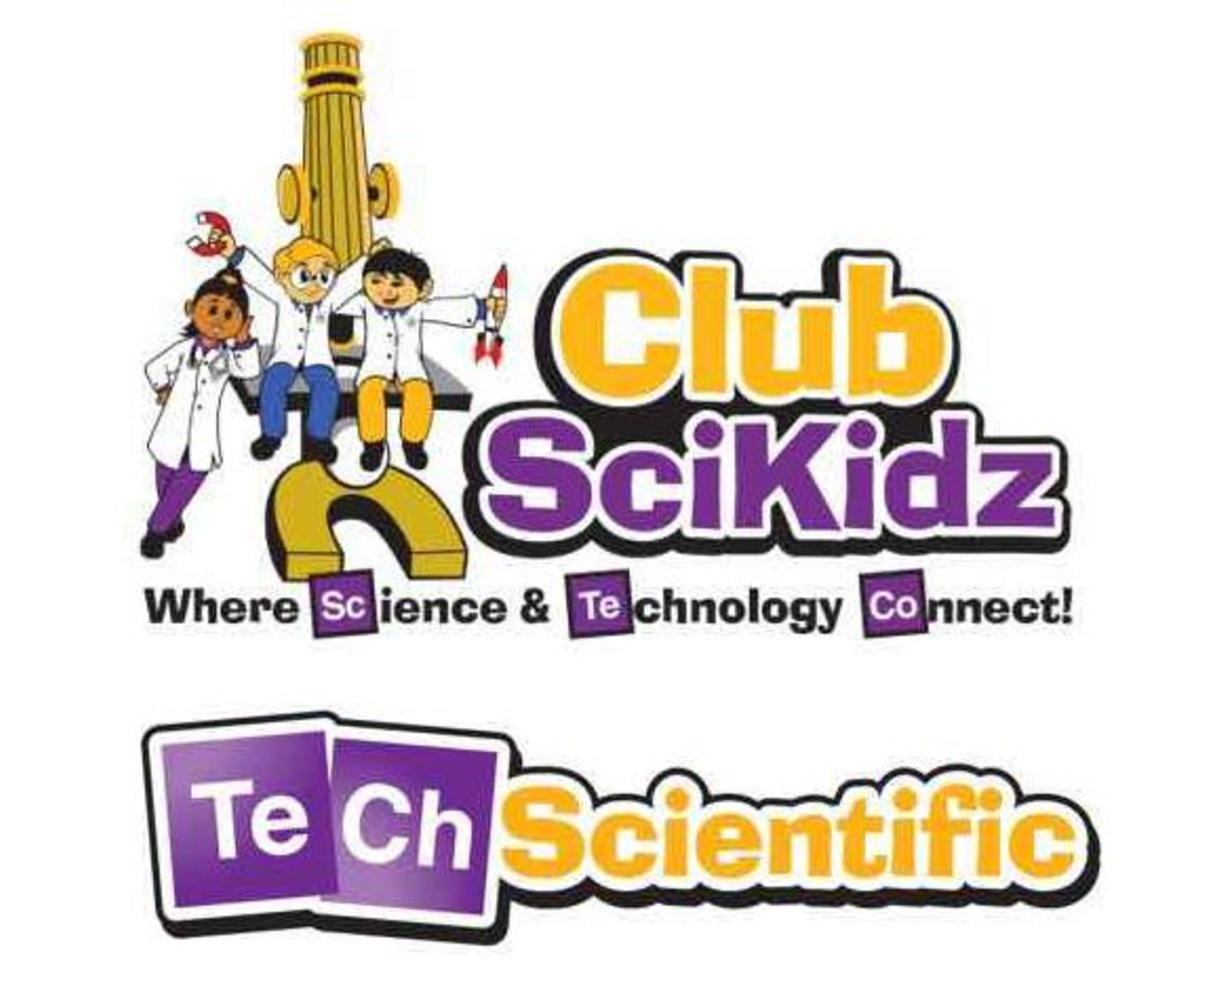 $249 for Club SciKidz Science & Technology Camps for Ages 4 to 15 in 7 MD Locations! $25 Deposit Paid Now ($50 Off!)